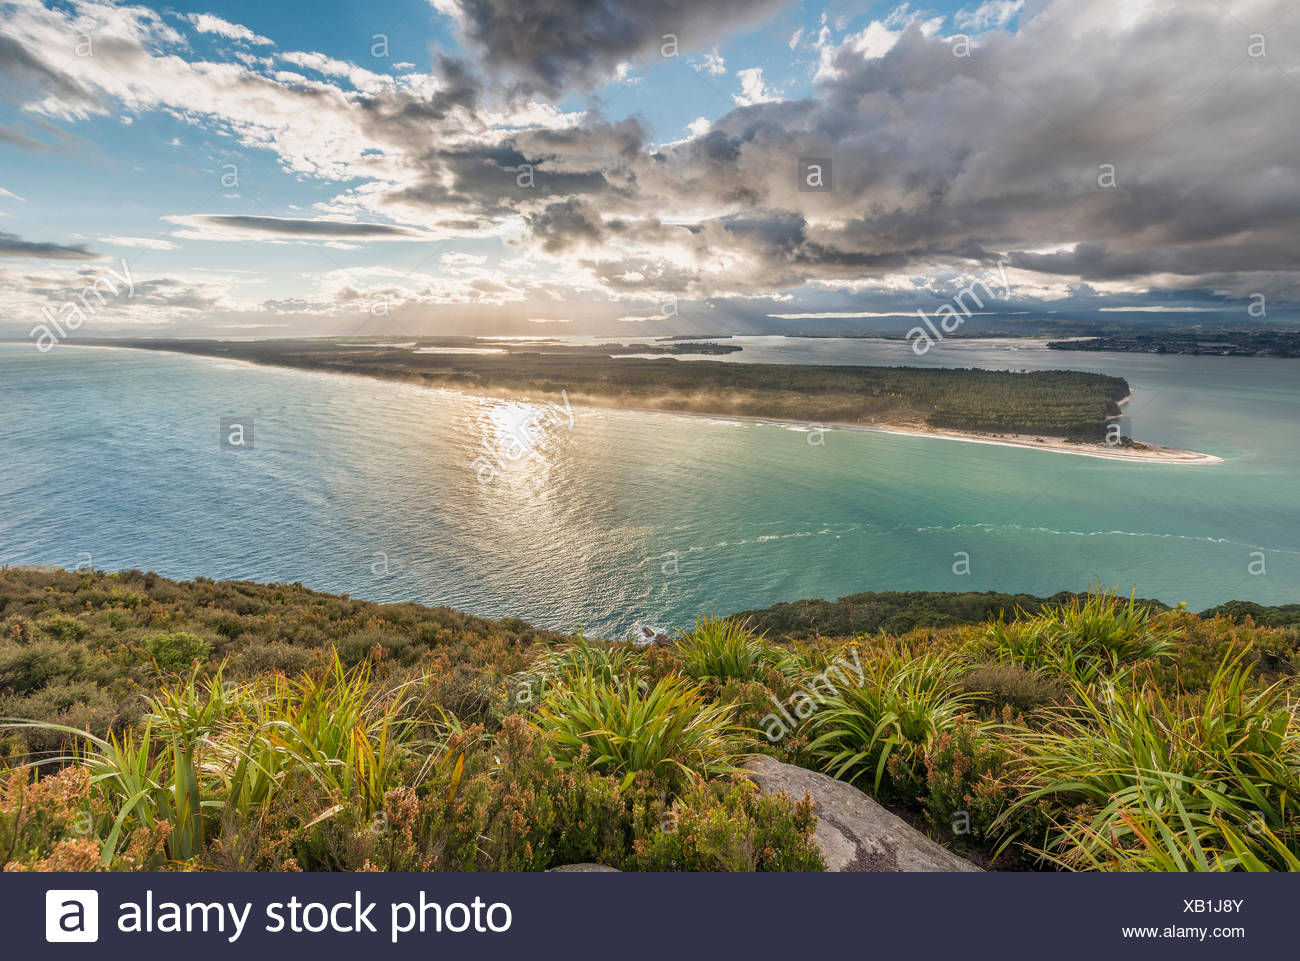 Panoramic view of Matakana Island, view from Mount Maunganui, Bay of Plenty Region, North Island, New Zealand - Stock Image